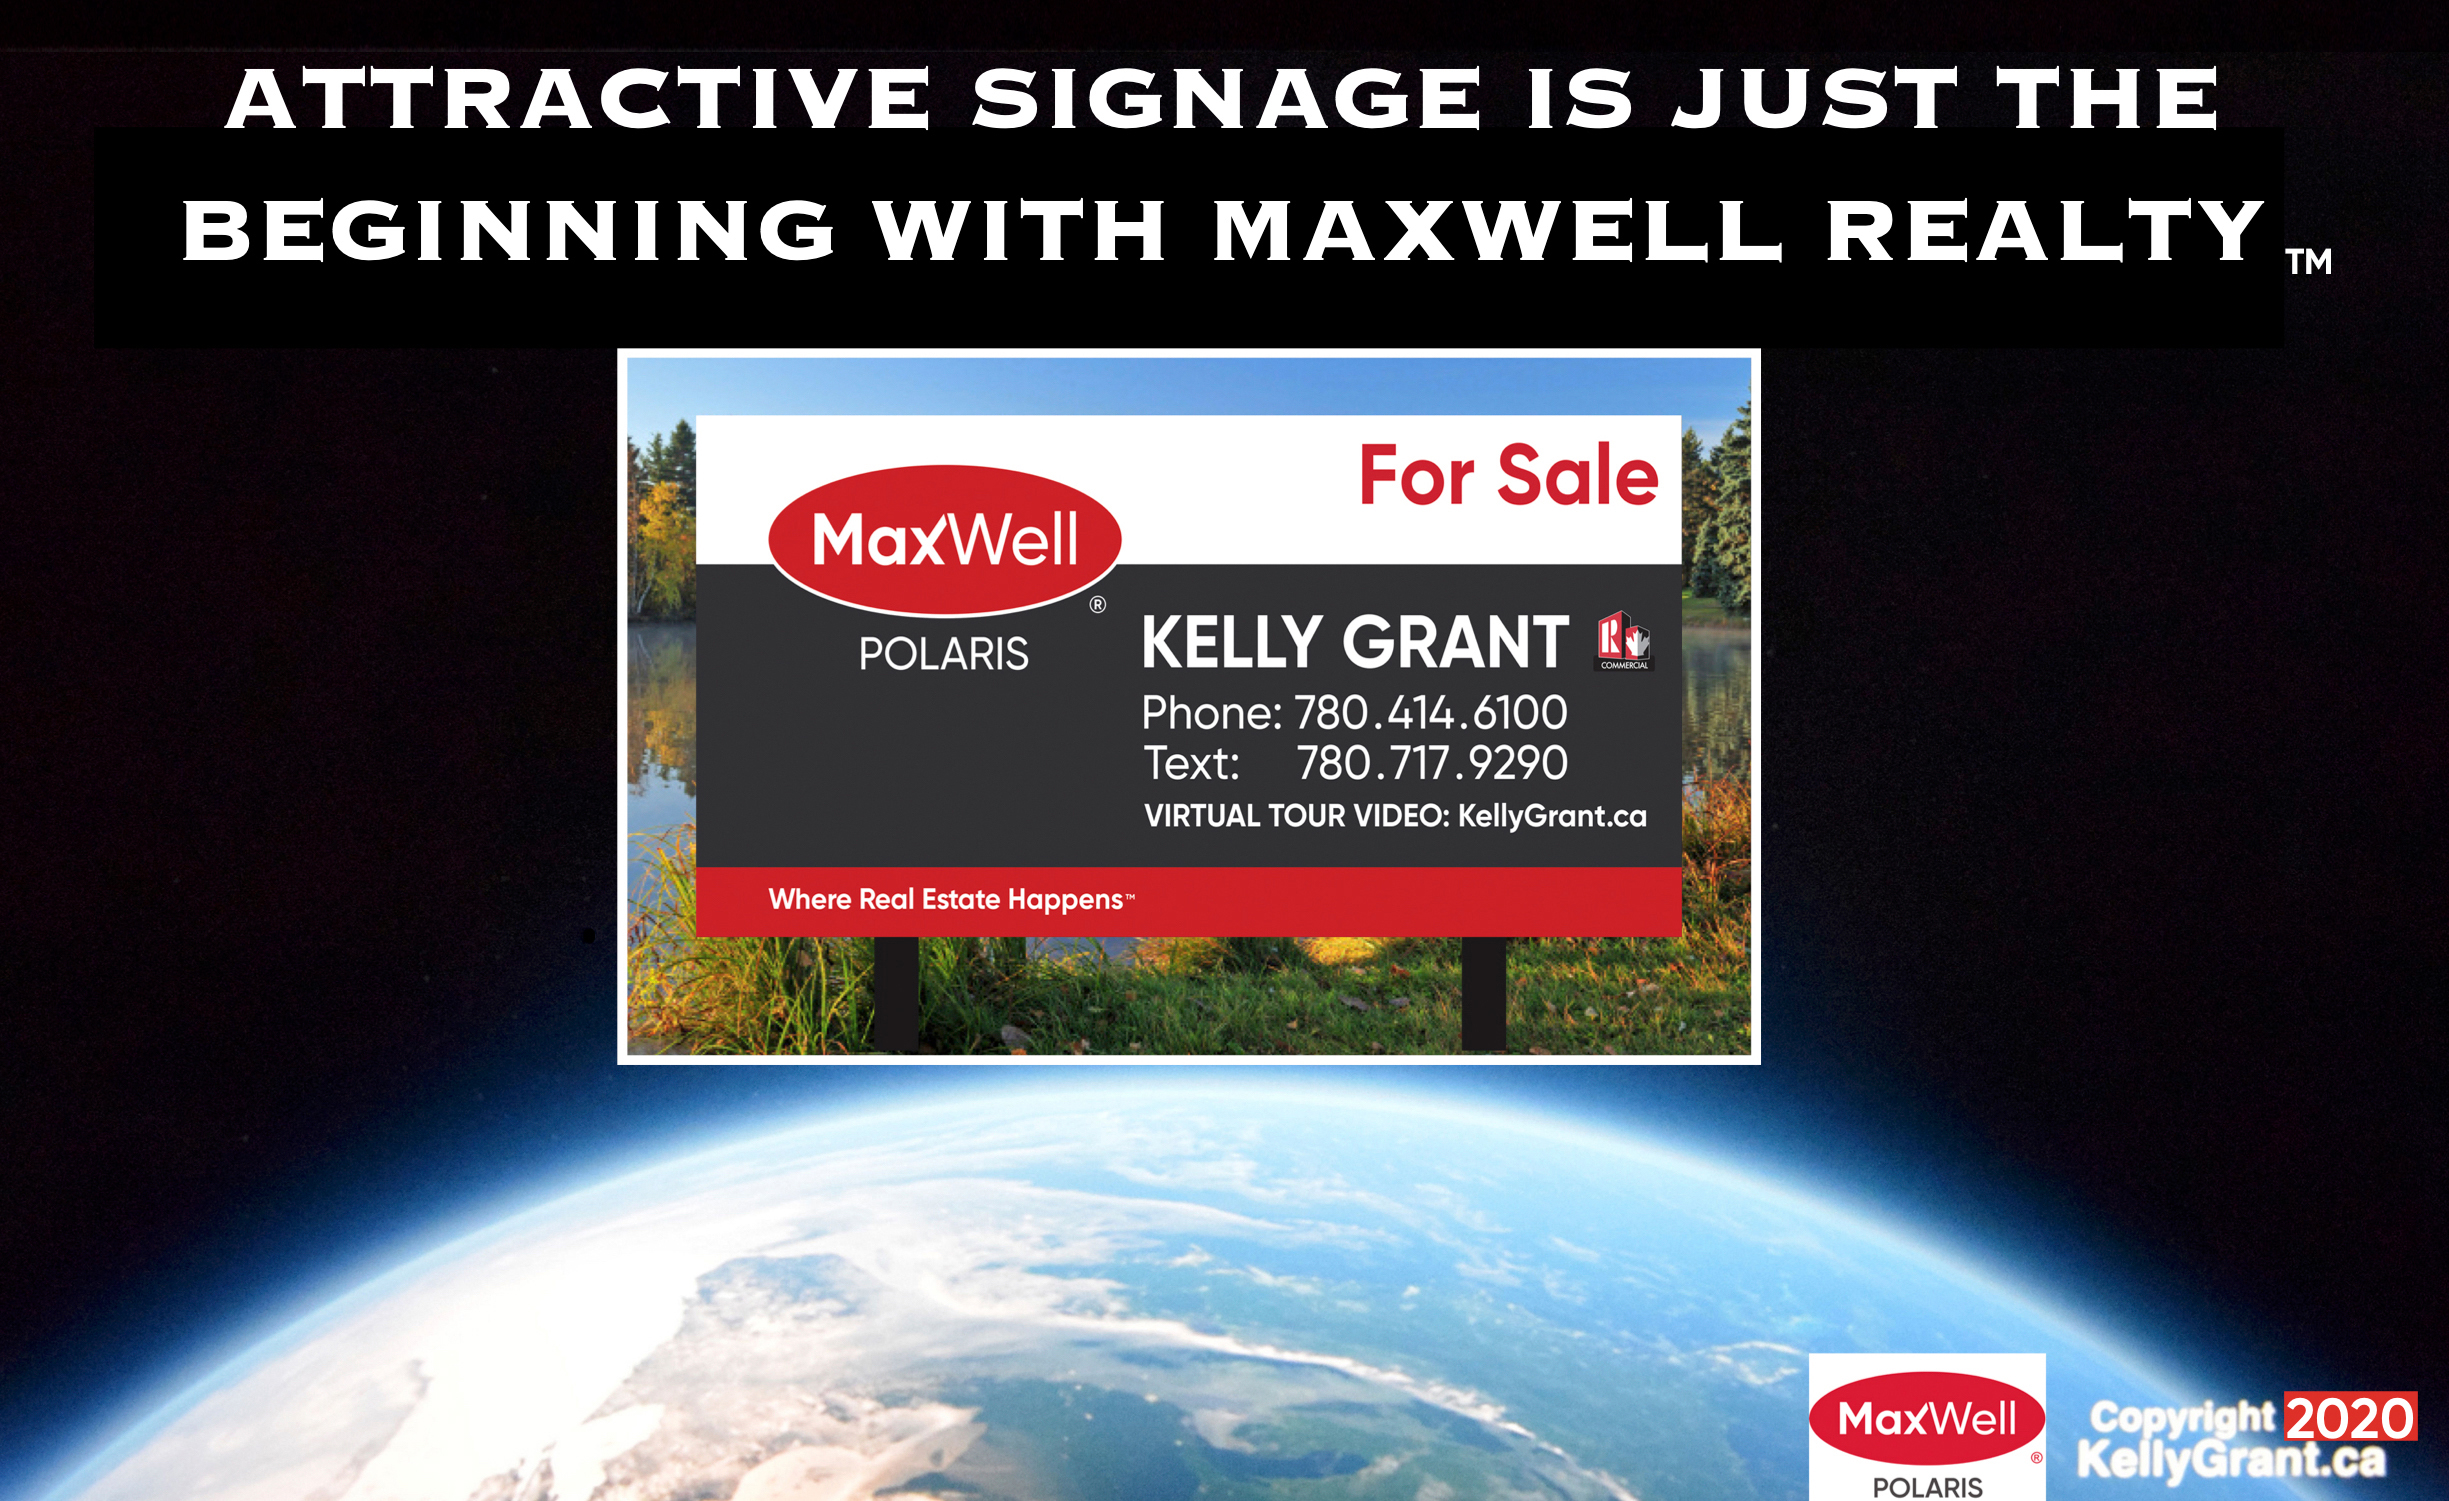 #4-KG MaxWell Attractive Signage Just the Beginning.jpg